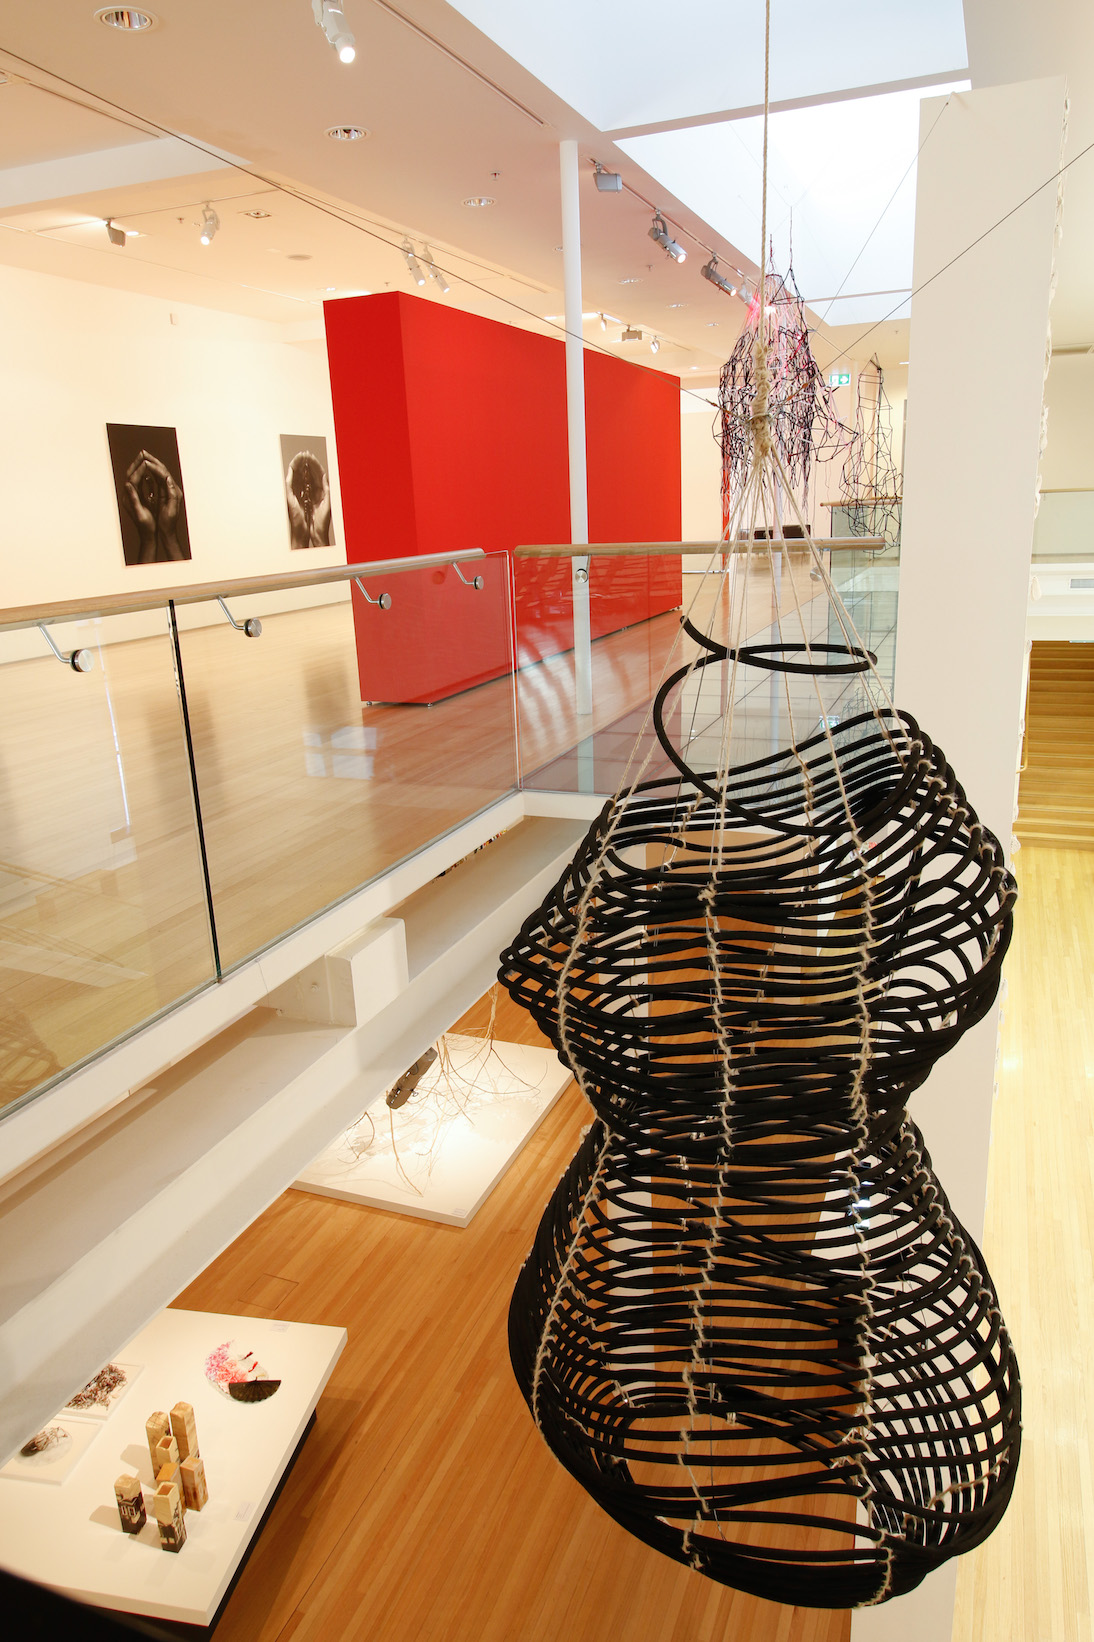 5b No-One, view into hanging sculptures and lower gallery.jpg